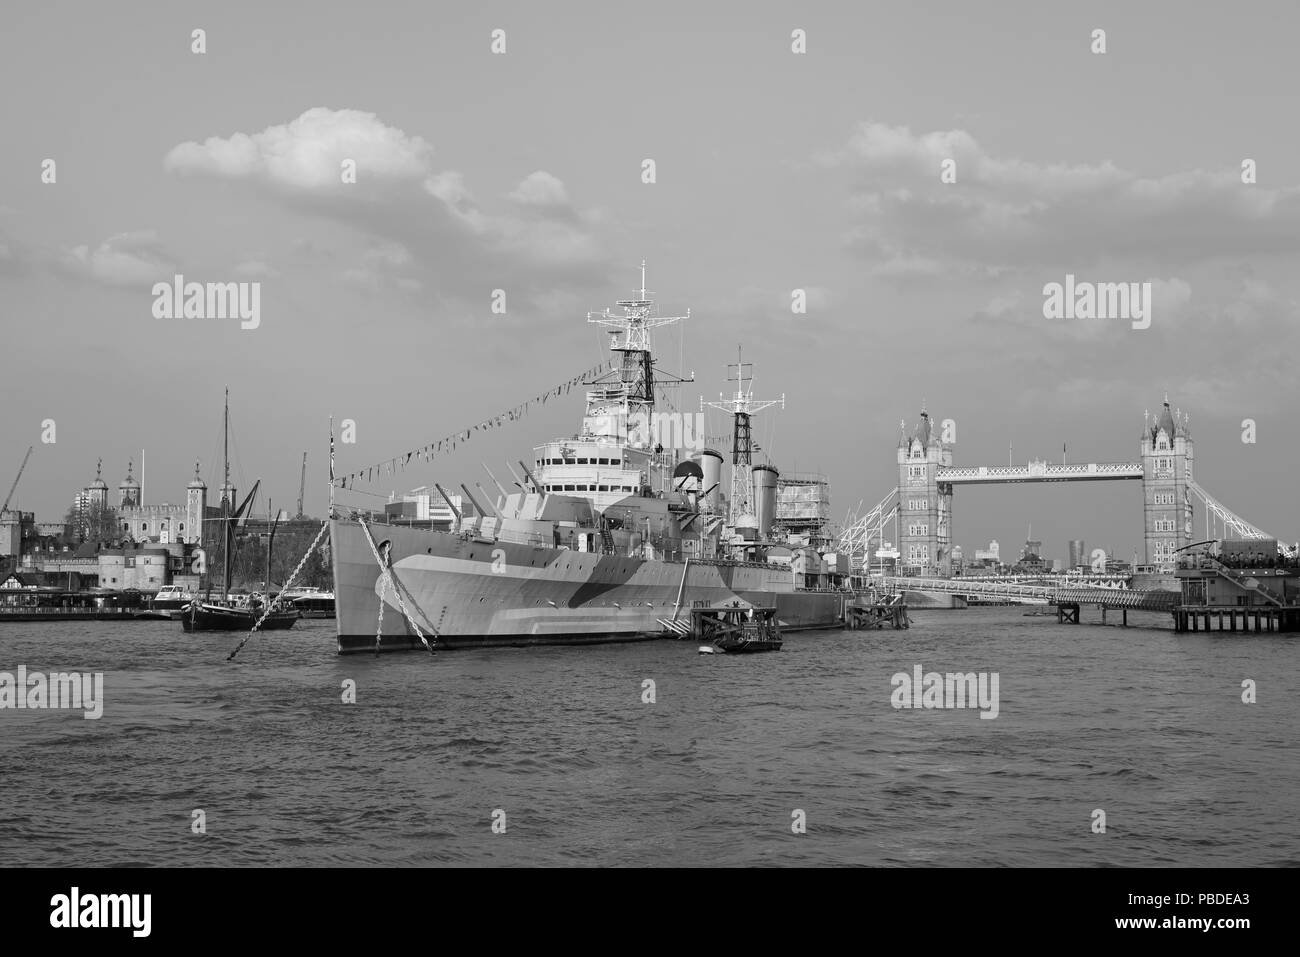 The Sailing Barge, Hydrogen, HMS Belfast, Tower of London and Tower Bridge, River Thames in London - Stock Image